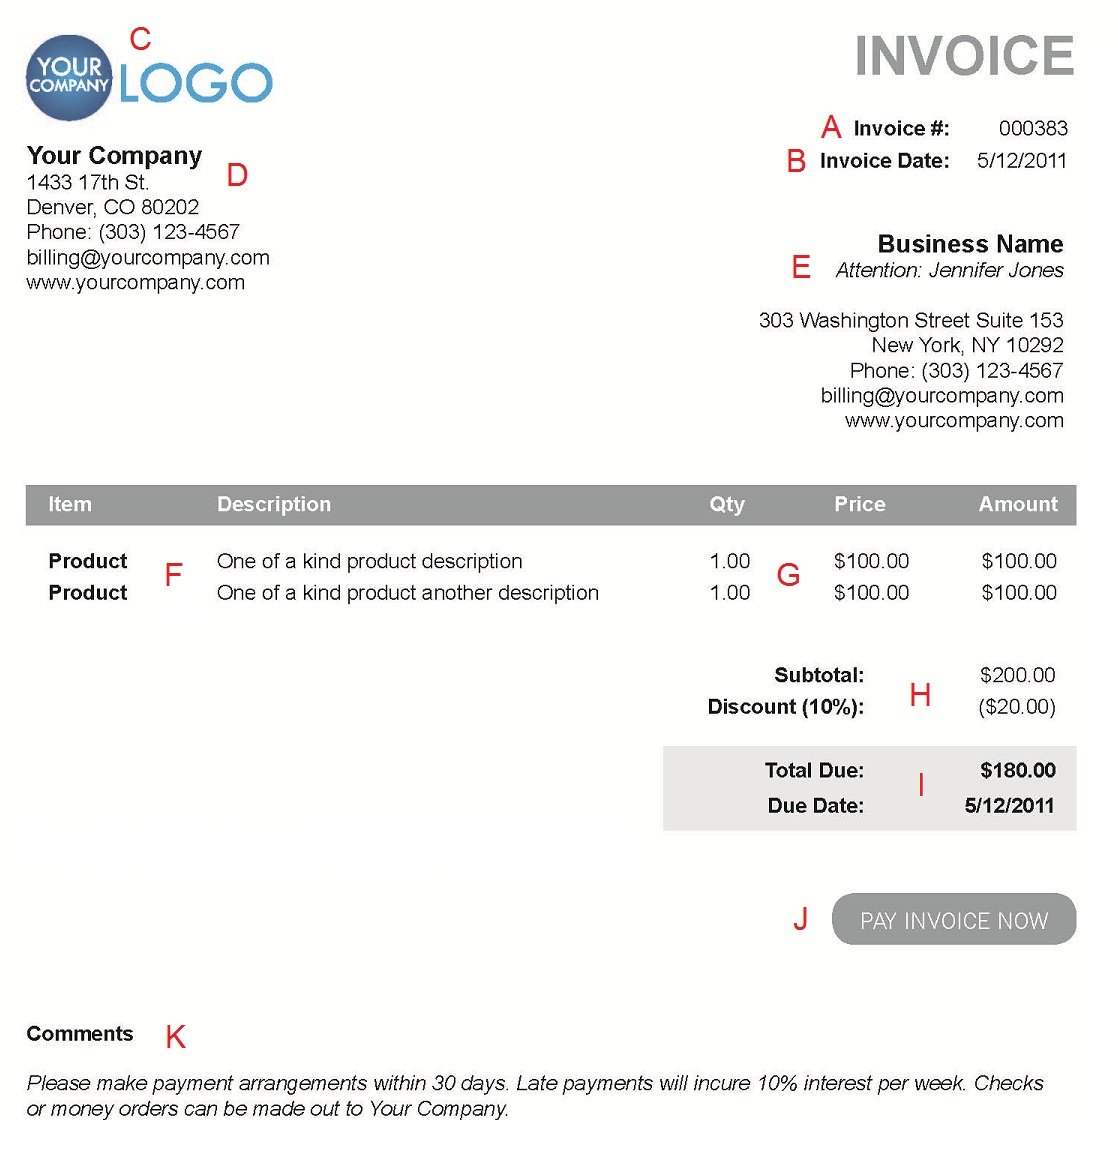 Opposenewapstandardsus  Pleasing The  Different Sections Of An Electronic Payment Invoice With Glamorous A  With Agreeable Jeep Invoice Price Also Unpaid Invoice In Addition Template For An Invoice And When To Invoice A Client As Well As Ups Invoice Number Tracking Additionally  Invoice Template From Paysimplecom With Opposenewapstandardsus  Glamorous The  Different Sections Of An Electronic Payment Invoice With Agreeable A  And Pleasing Jeep Invoice Price Also Unpaid Invoice In Addition Template For An Invoice From Paysimplecom